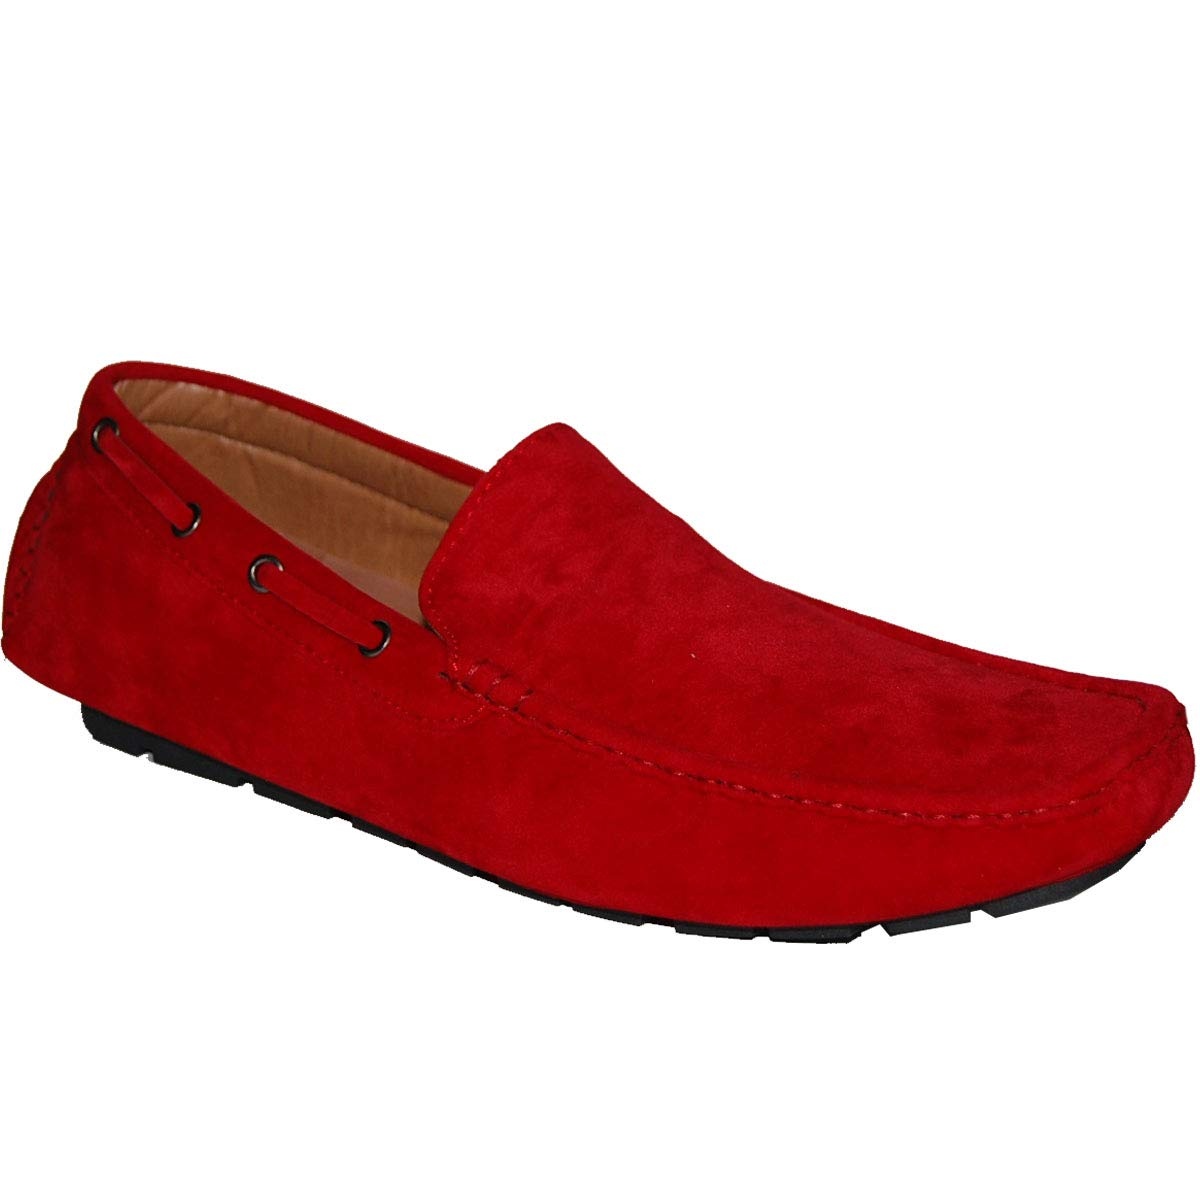 KRAZY SHOE ARTISTS Success Red Suede Look Mens Loafer Driver Shoes